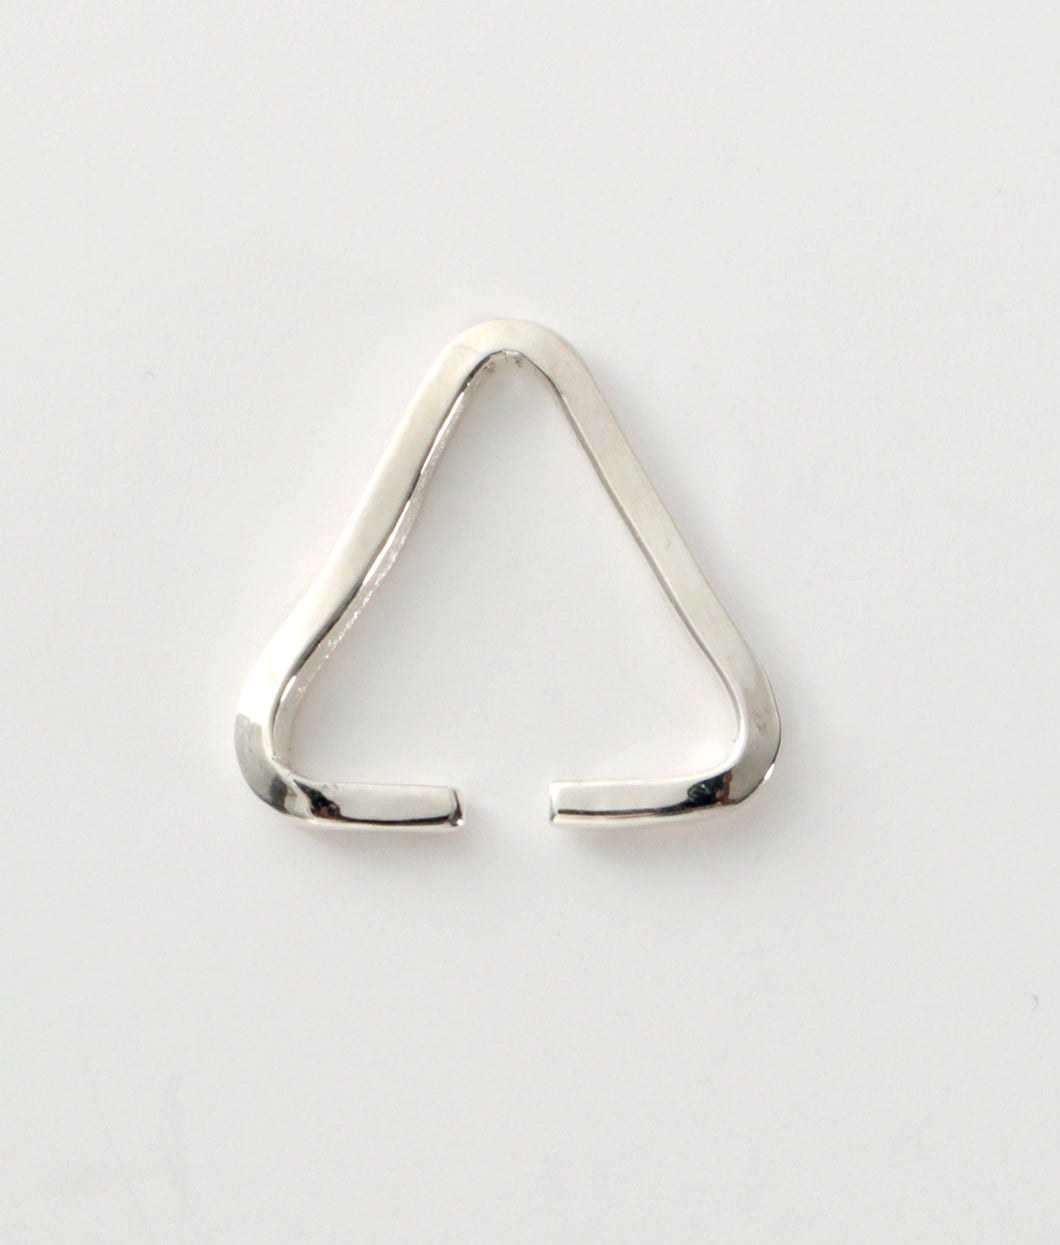 〈FAIS DESIGNS〉SHAPES EAR CUFFS △/シェイプイヤカフ(SILVER)